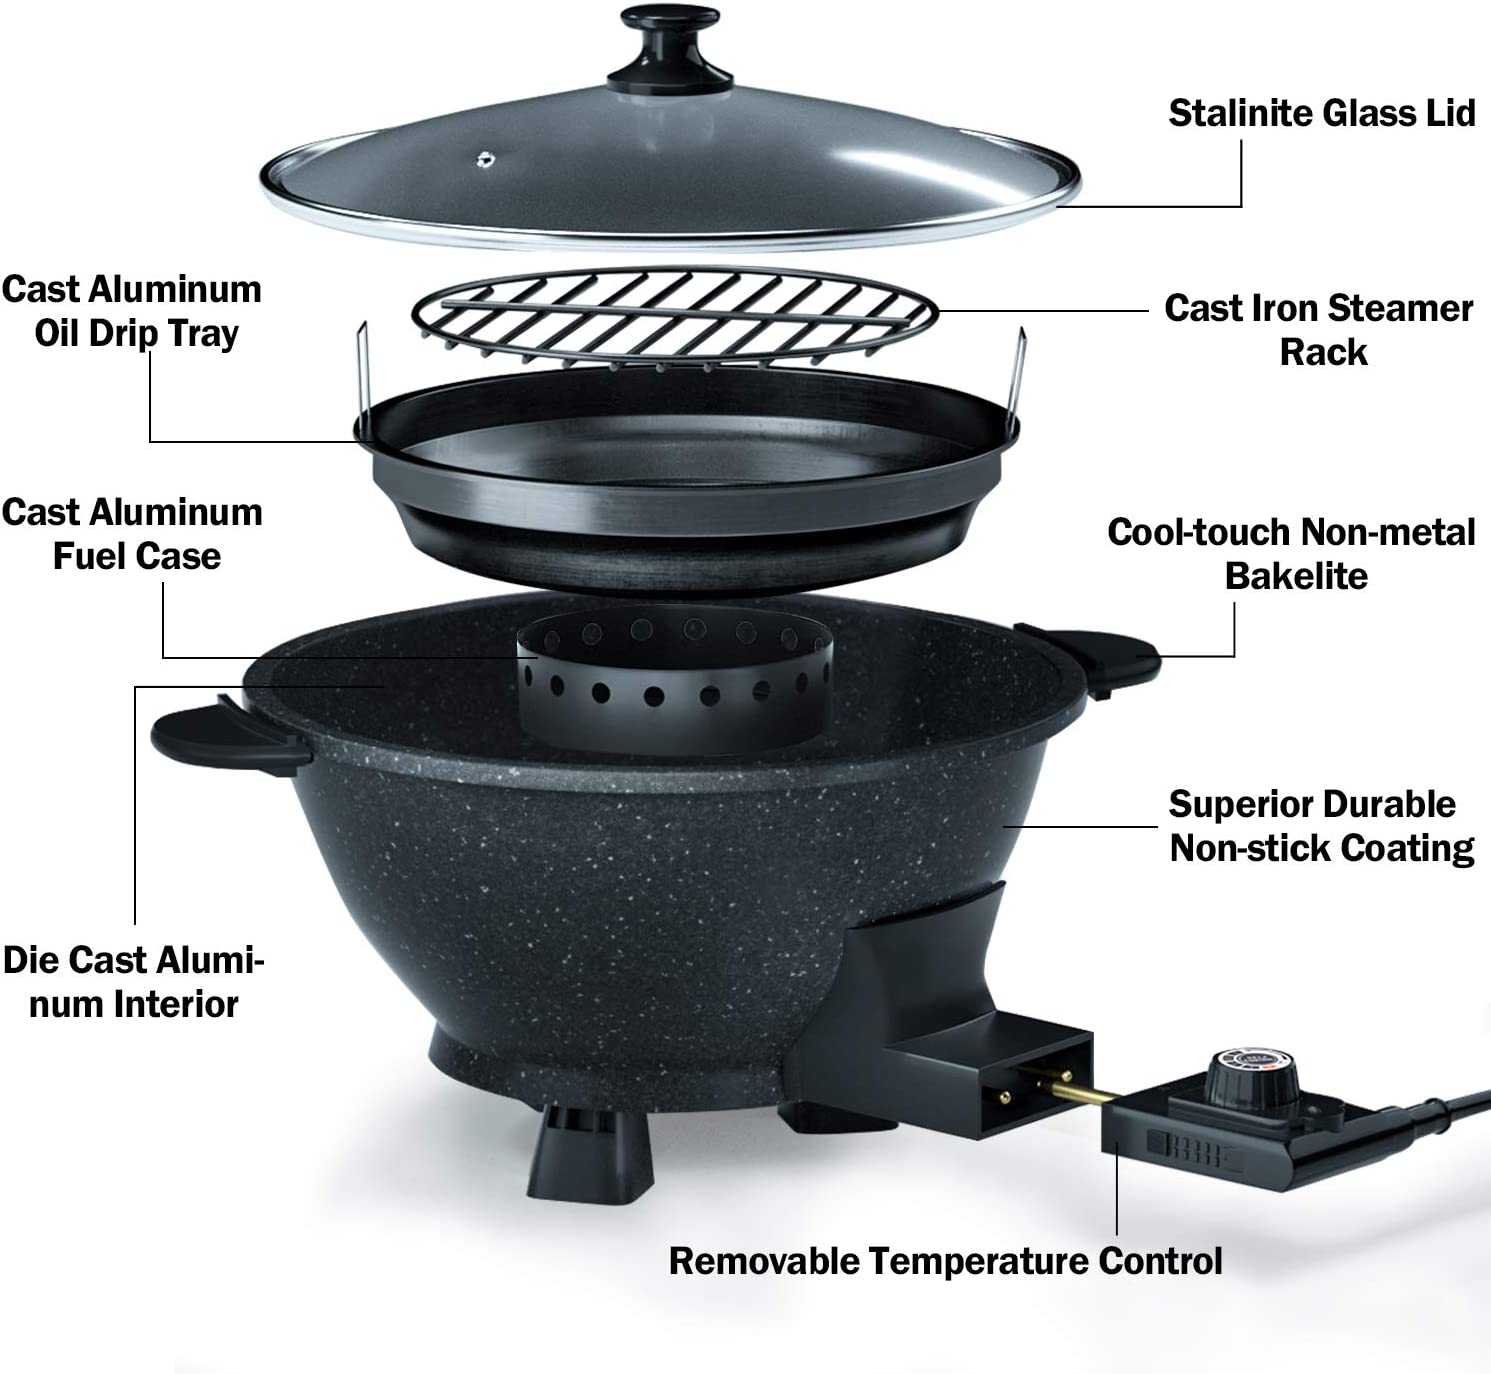 6 pcs Smoker Indoor 9-in-1 Electric Skillets Nonstick with Lid Slow Cooker Electric Smoker ATGRILLS Multi-functional Electric Wok 7.7 QT Marble